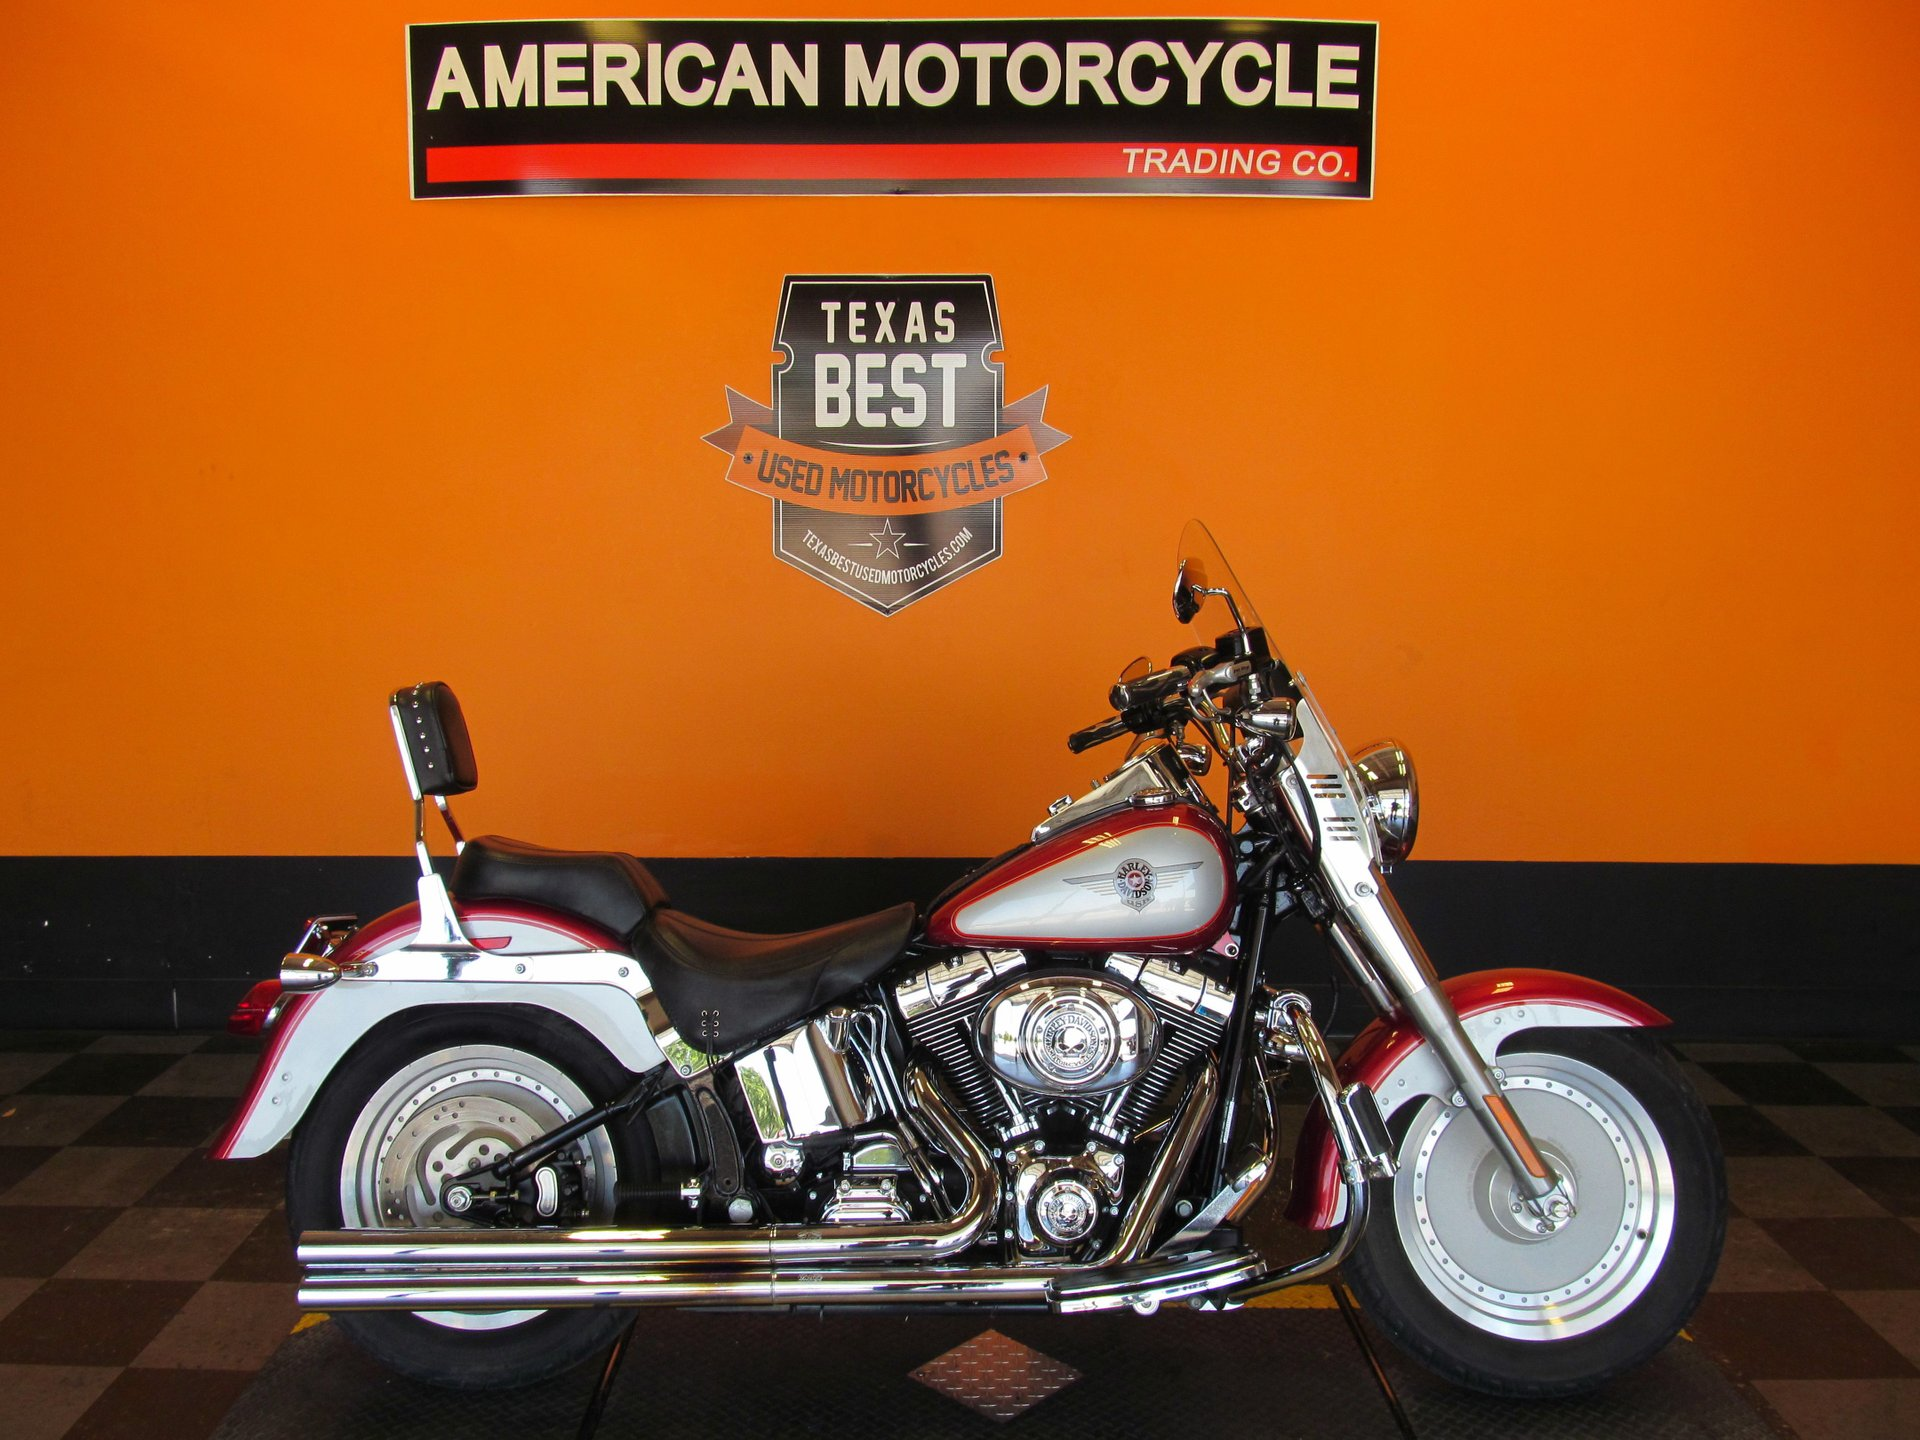 2004 harley davidson softail fat boy flstf